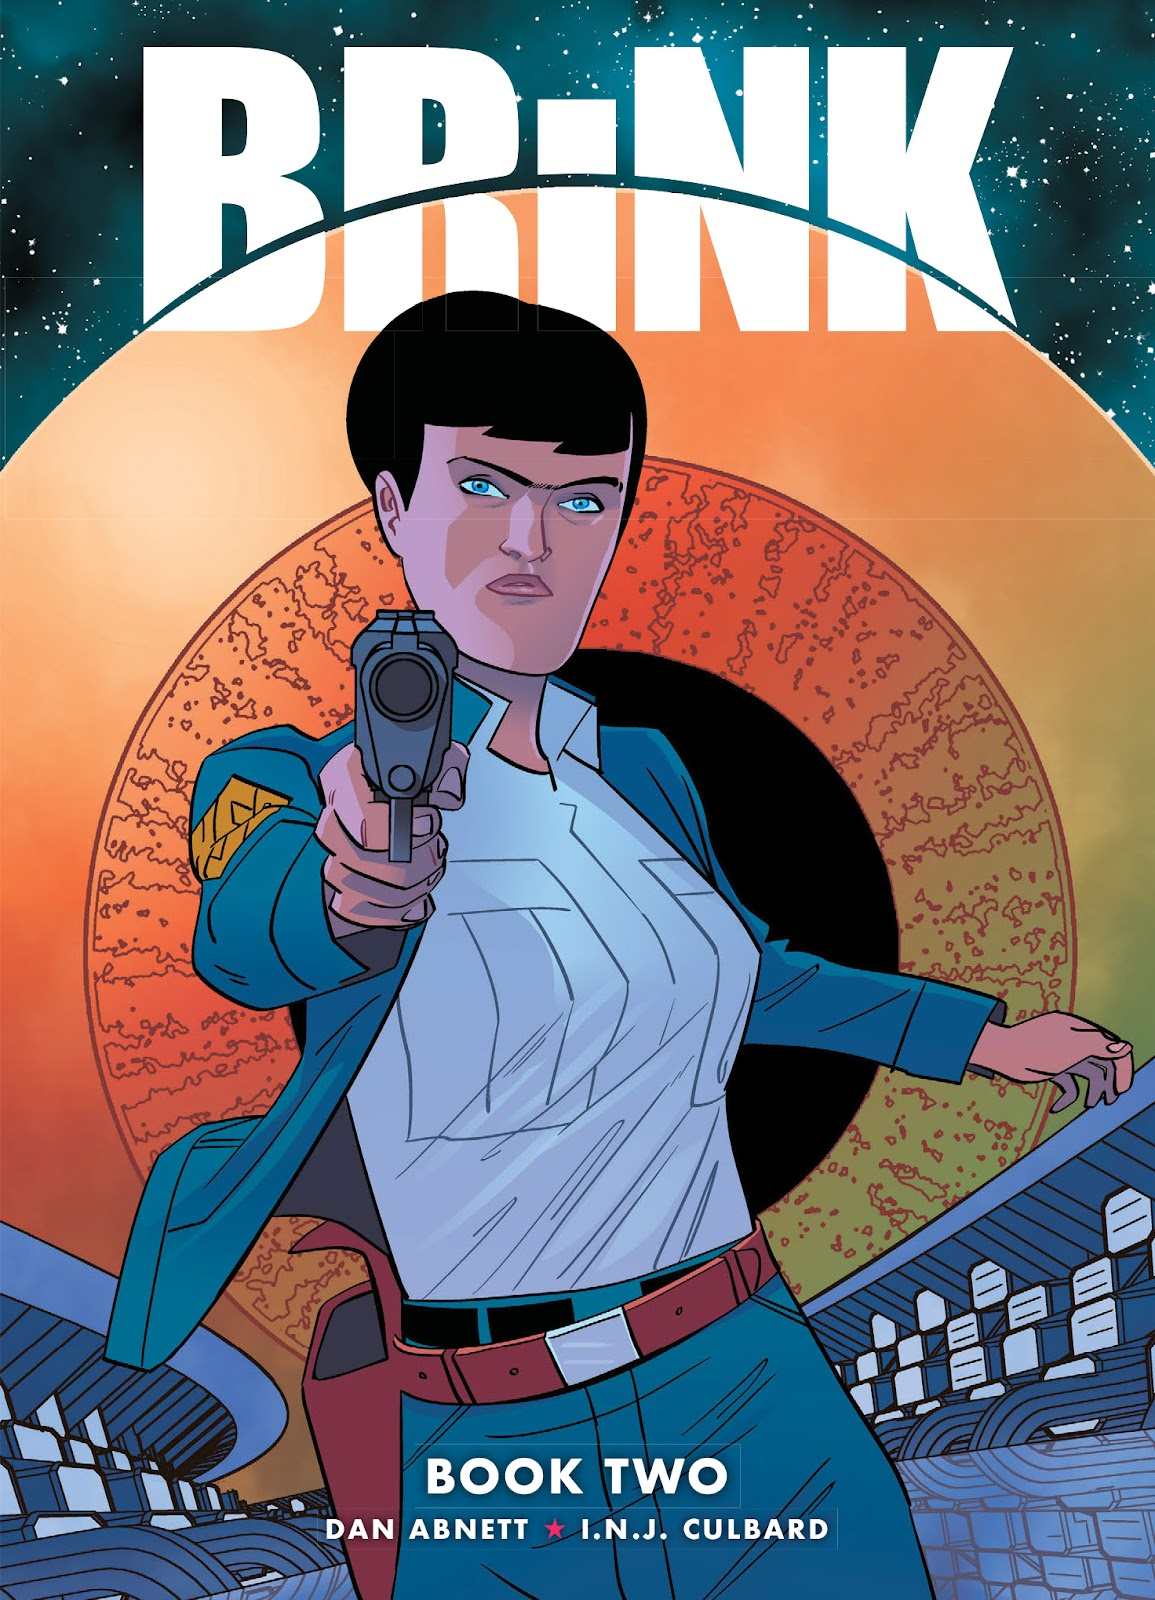 Read online Brink comic -  Issue # TPB 2 - 1